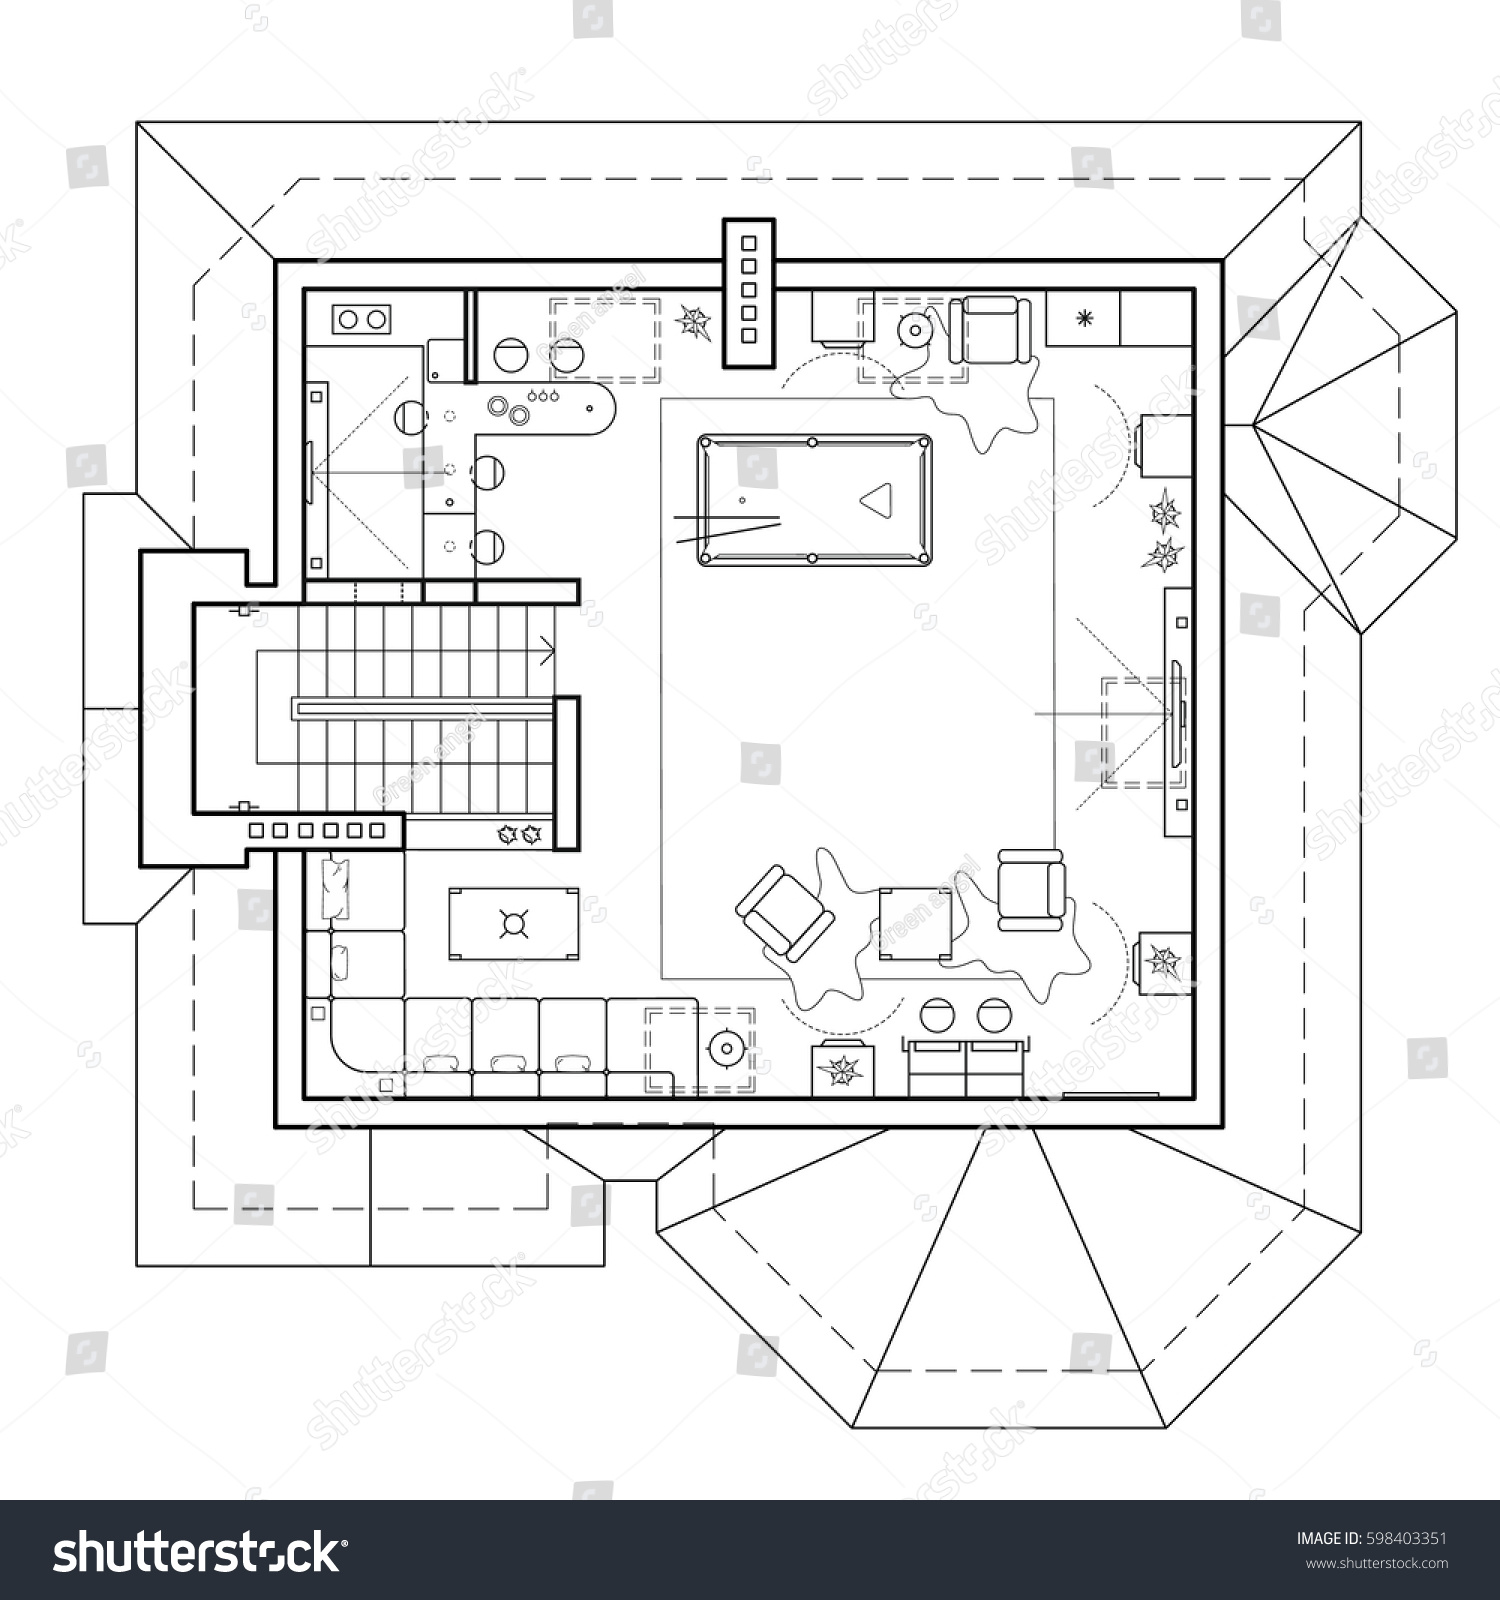 Black white architectural plan house layout stock vector for Kitchen plan view